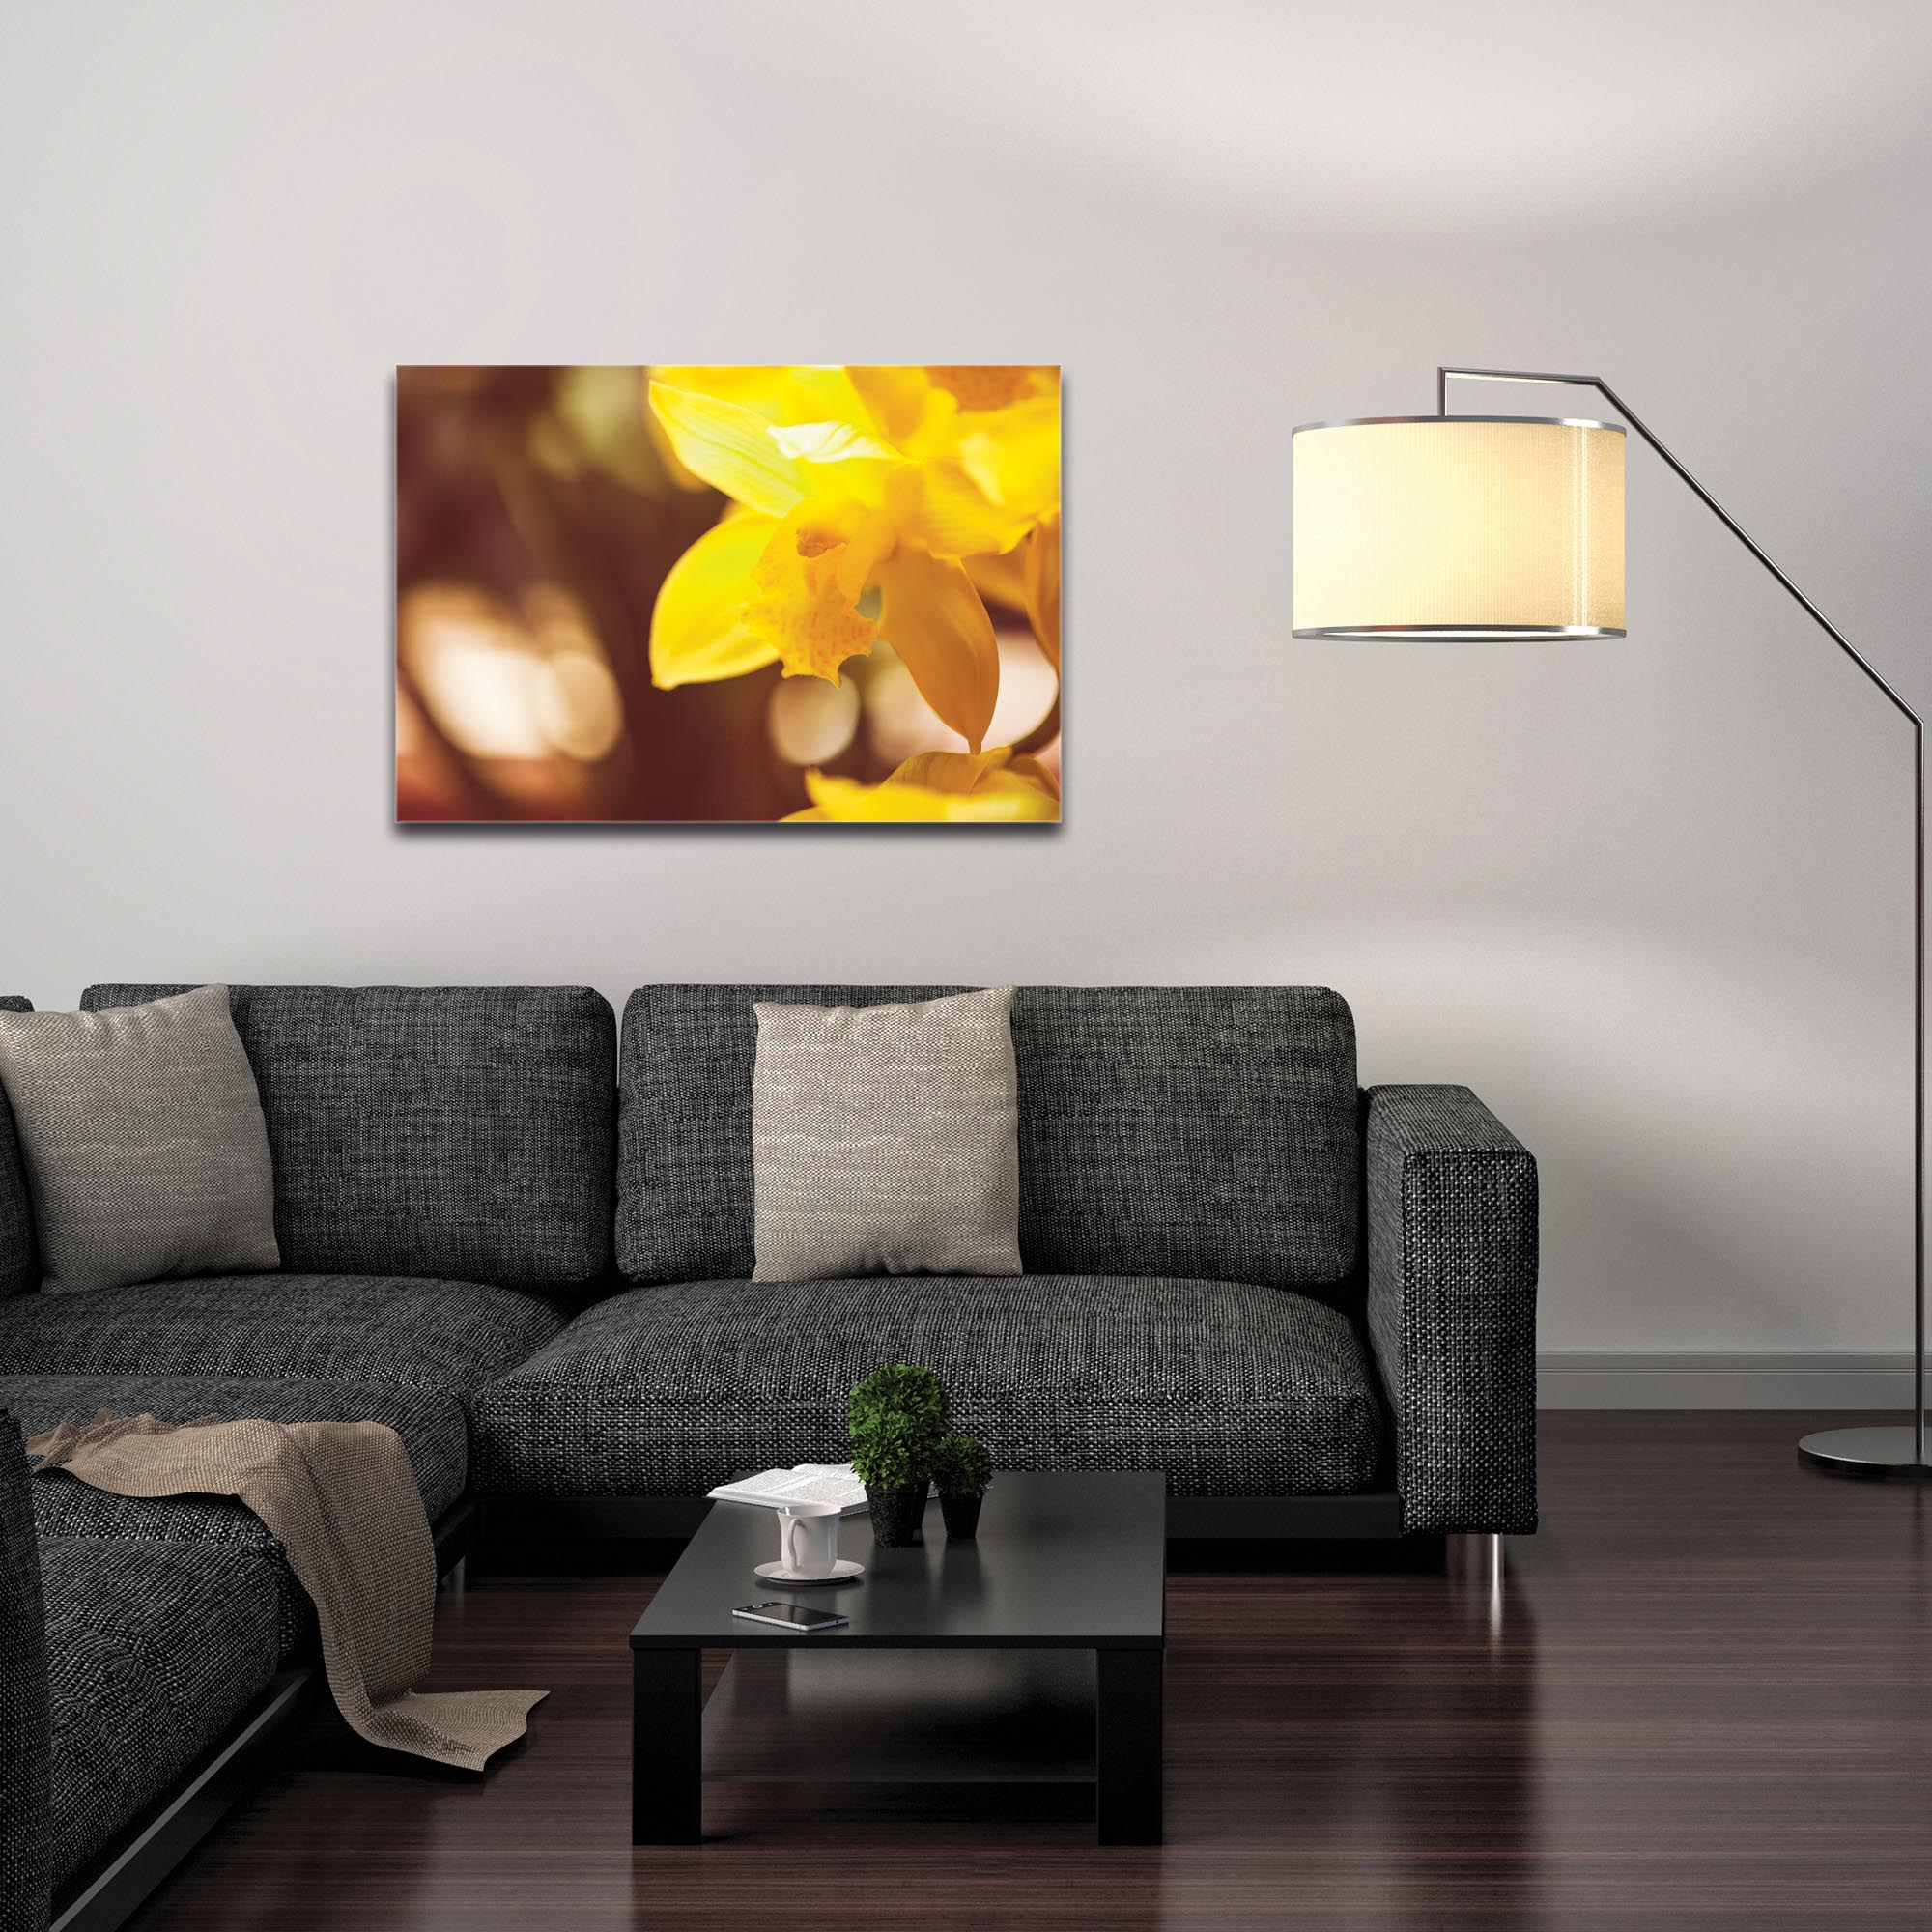 Nature Photography 'Golden Bloom' - Flower Blossom Art on Metal or Plexiglass - Image 3